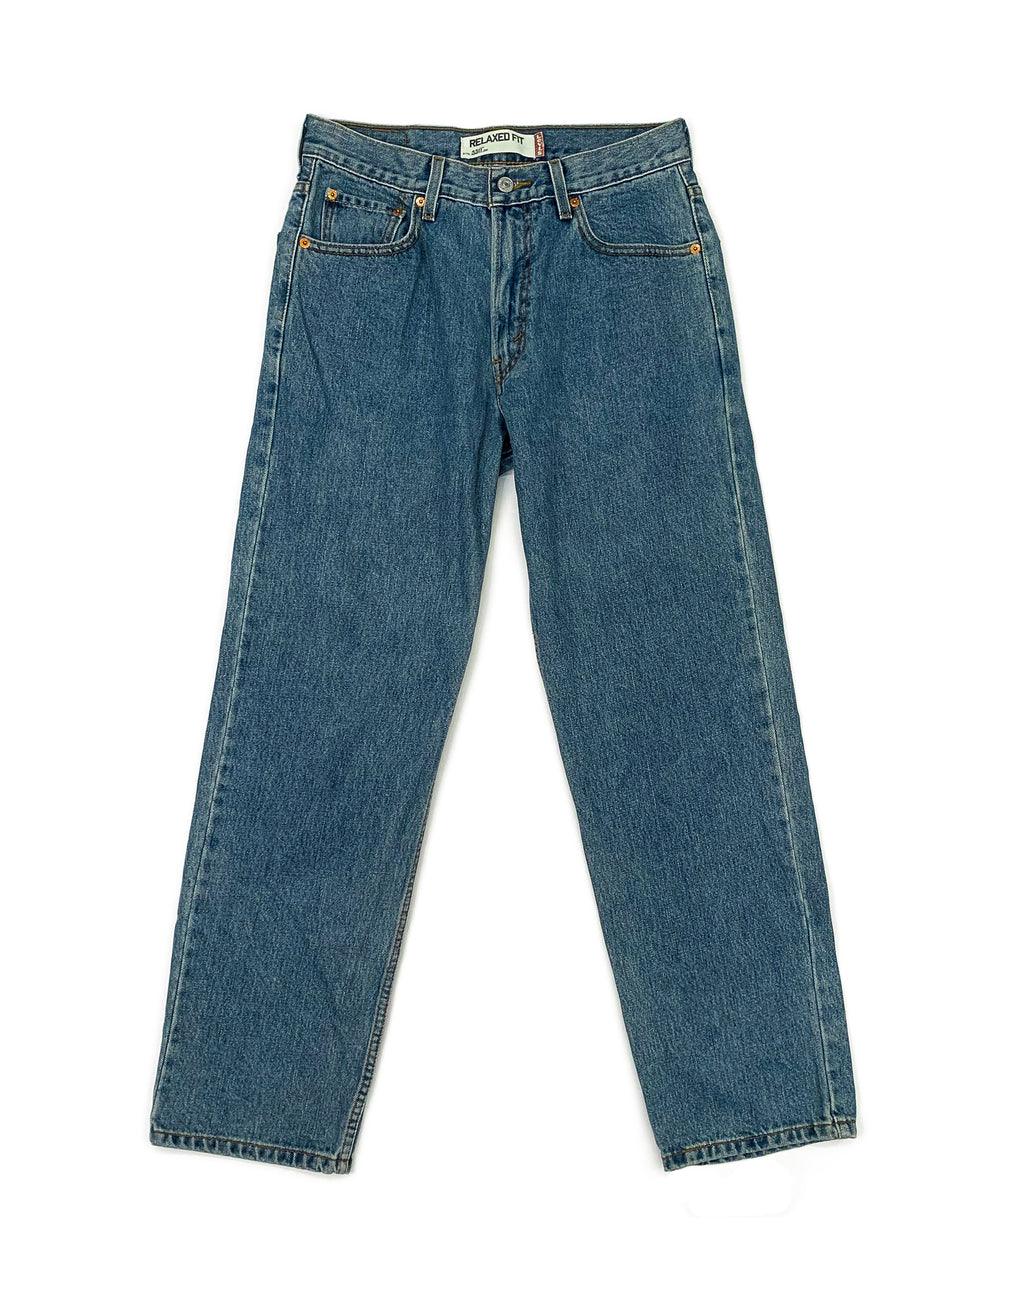 LEVI'S 550 LIGHT WASH DENIM JEANS